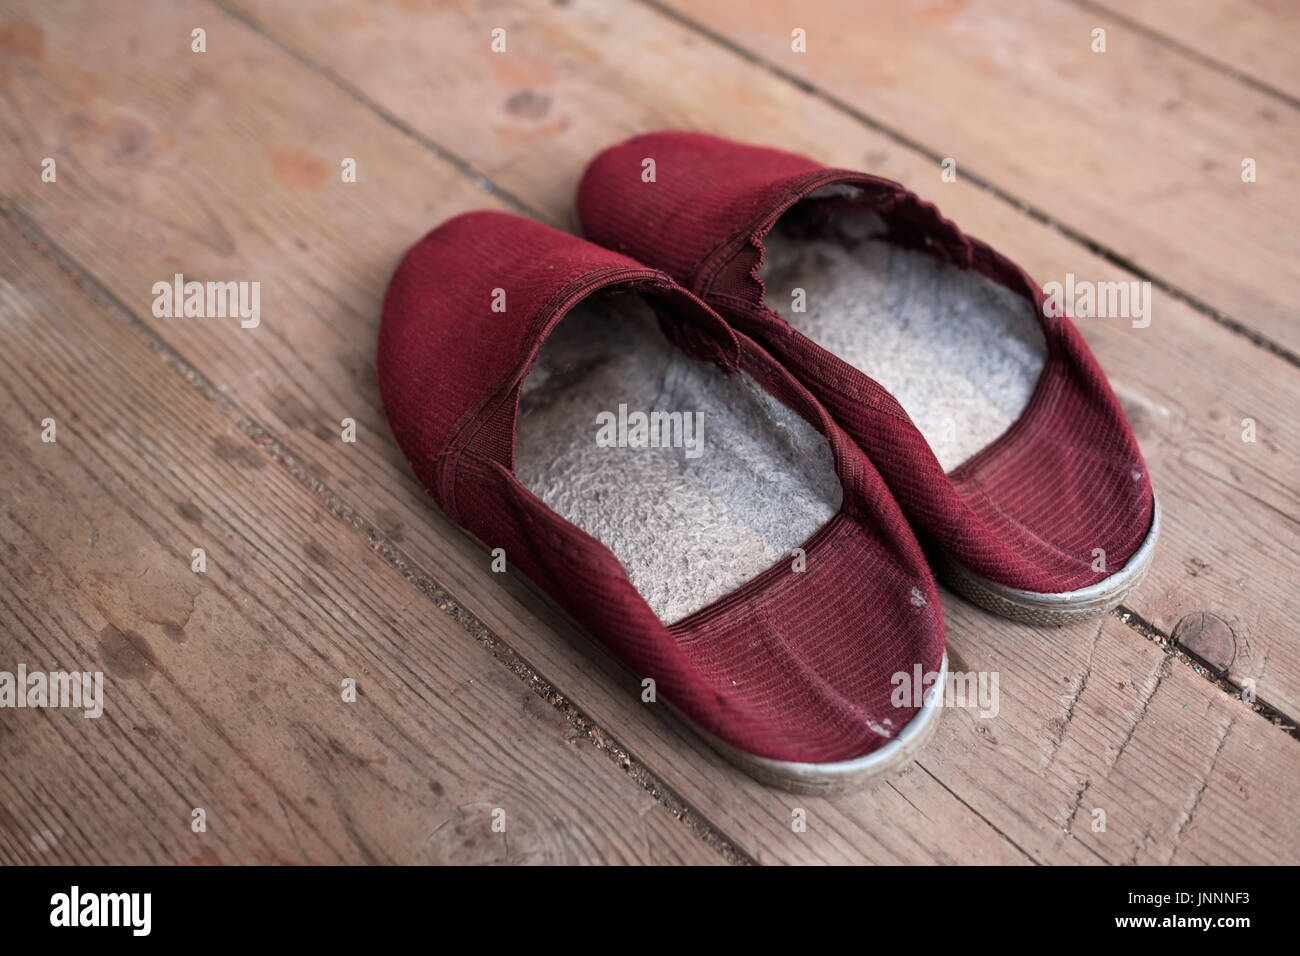 5b6649feca7 Warm red slippers on the background of old wooden floor. - Stock Image